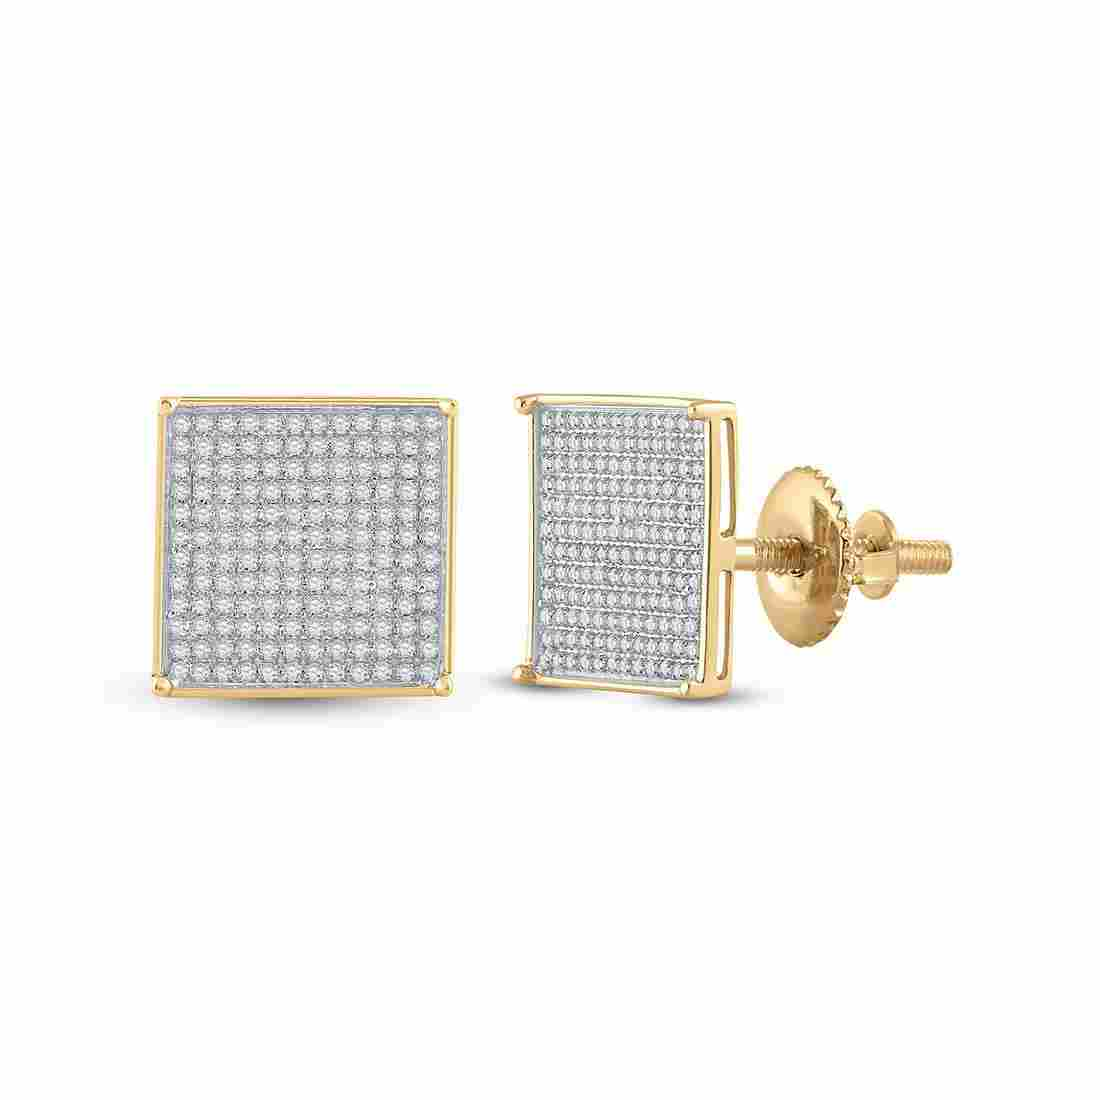 10kt Yellow Gold Womens Round Diamond Square Earrings